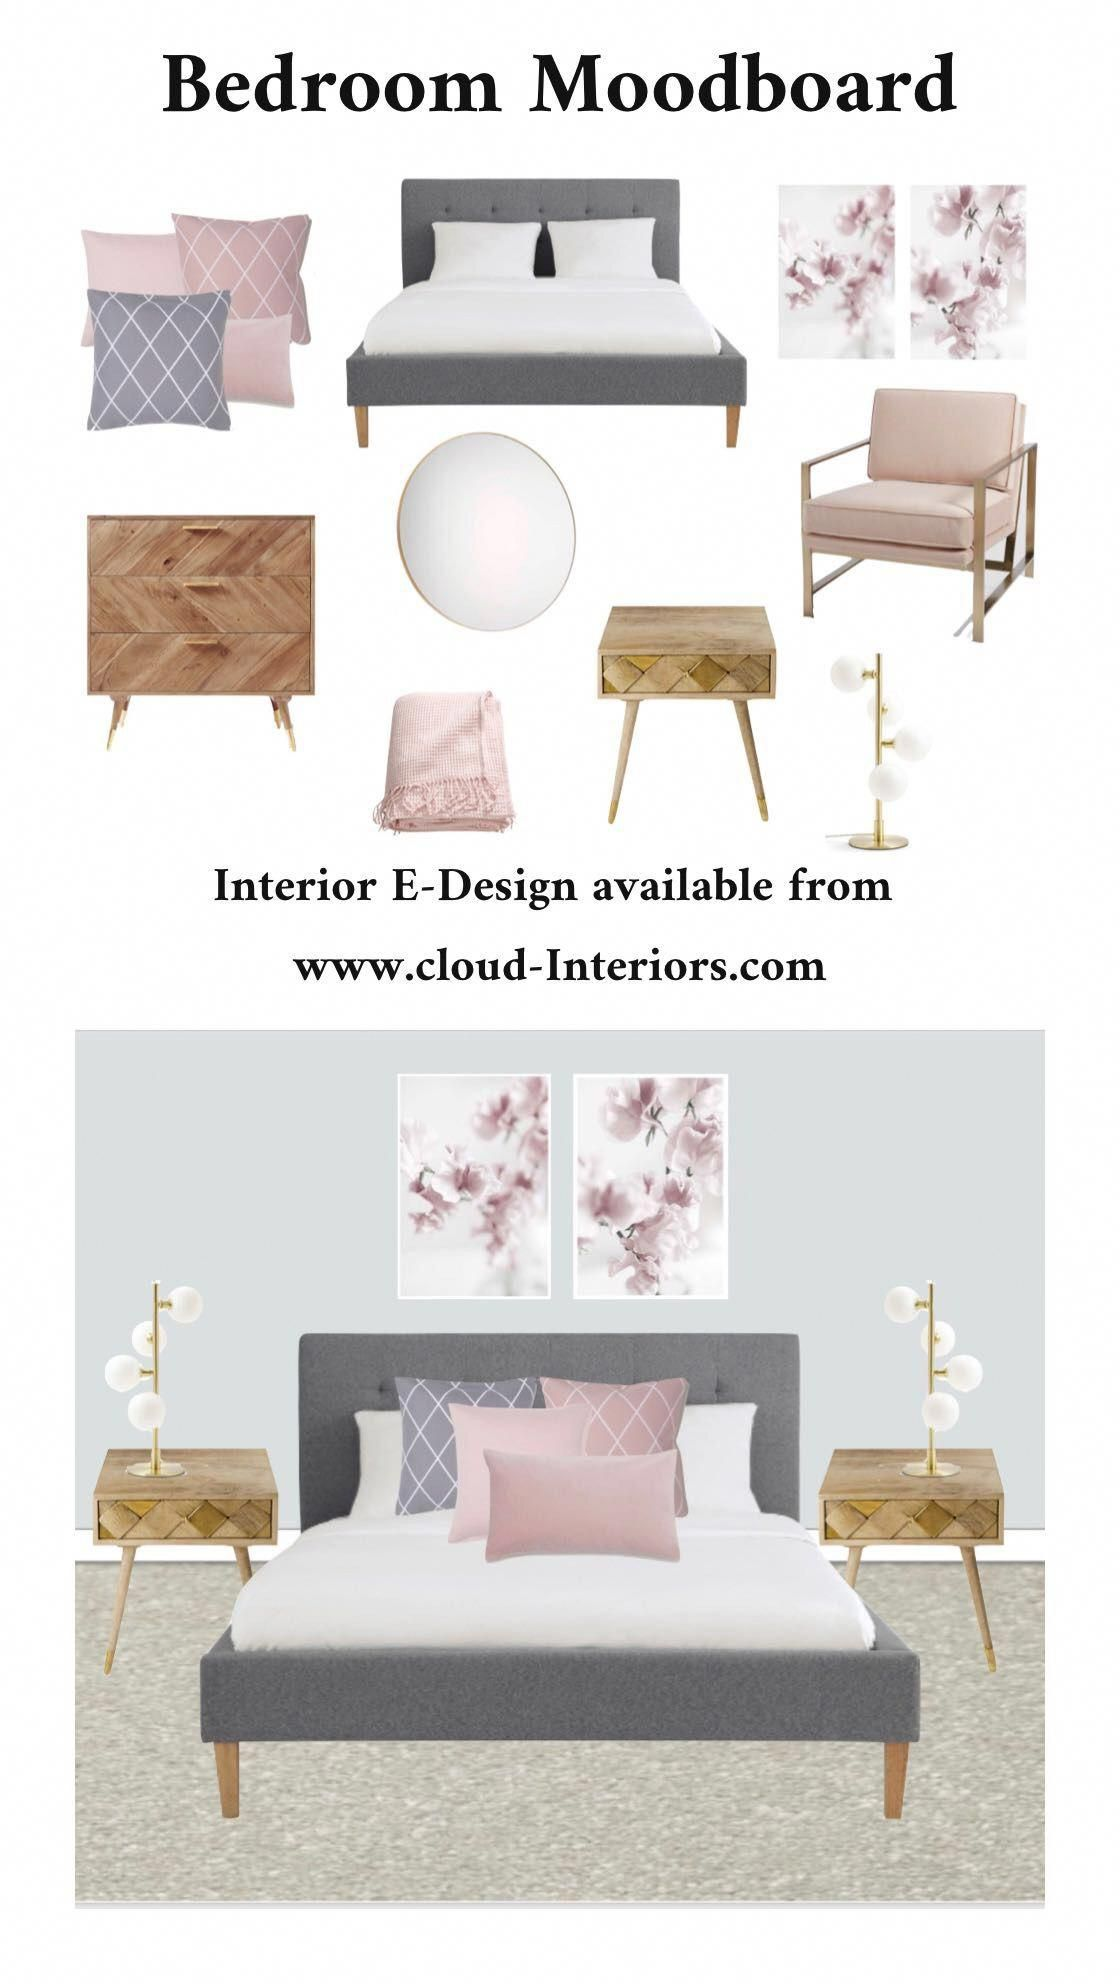 Home Decoration Online Shopping Key: 7622702106   Interior Office